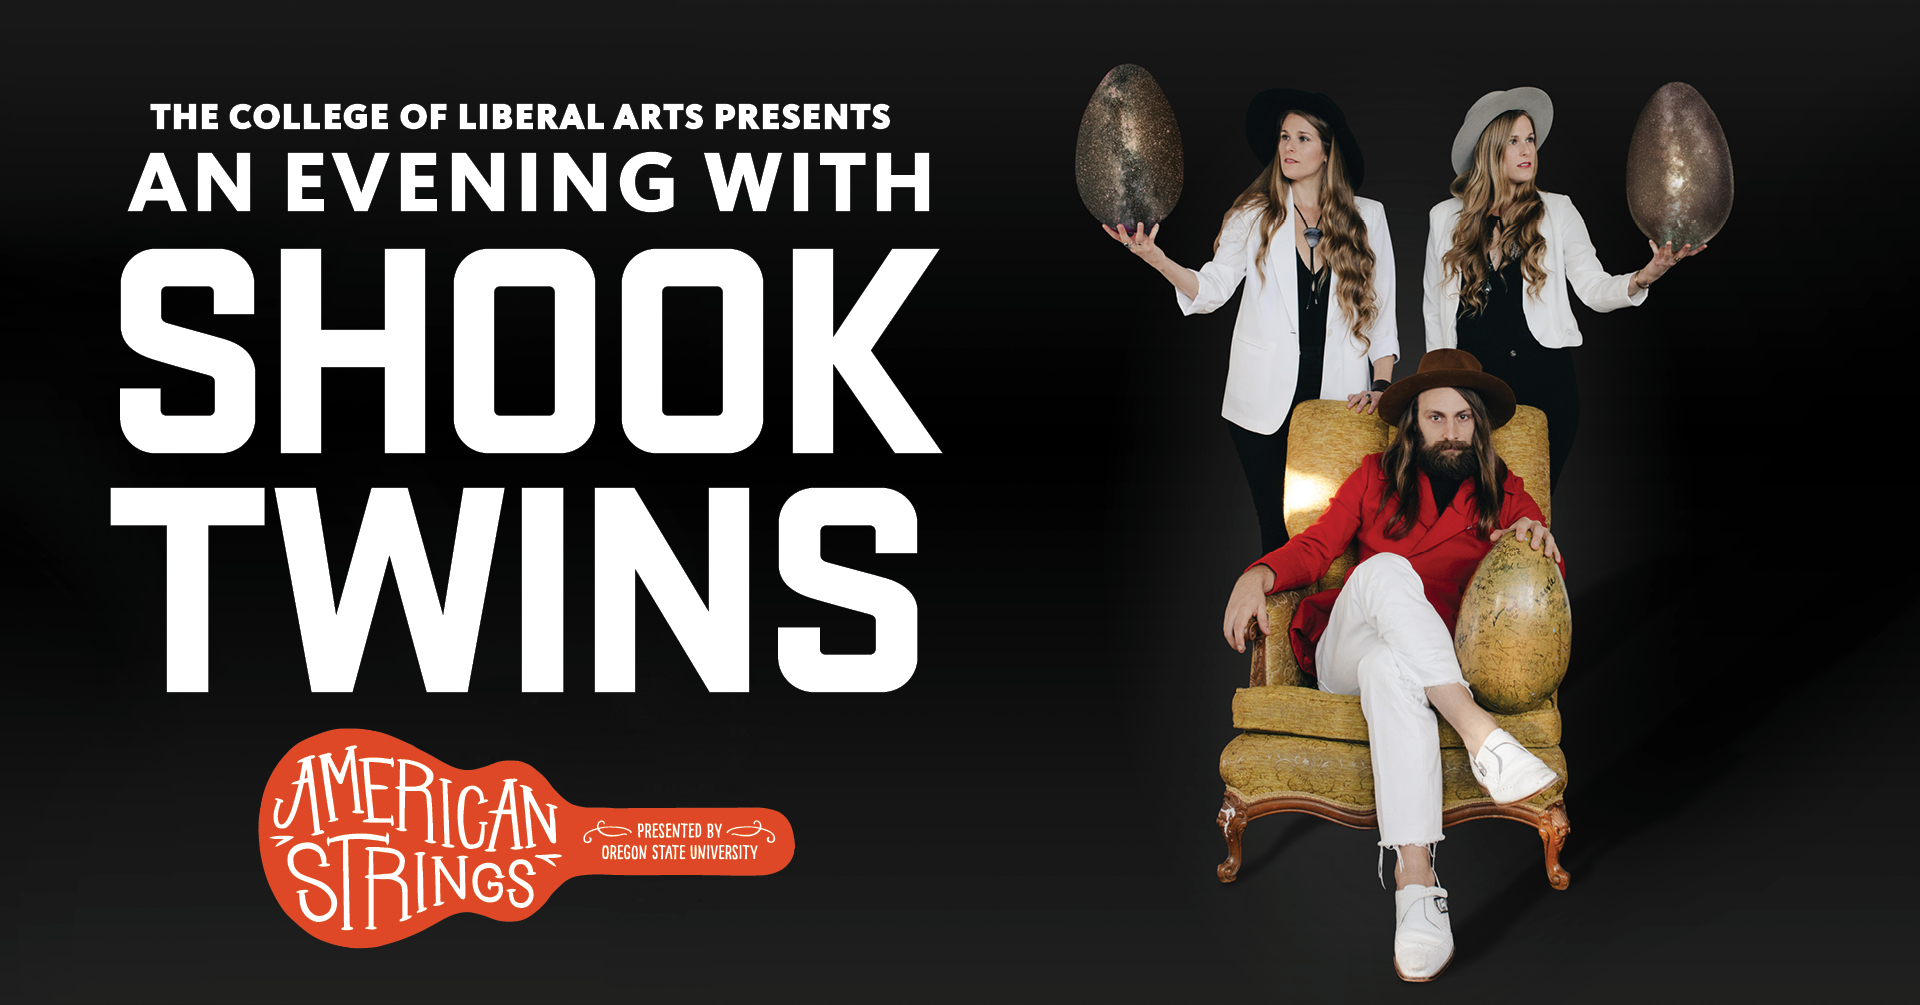 American Strings presents An Evening with Shook Twins